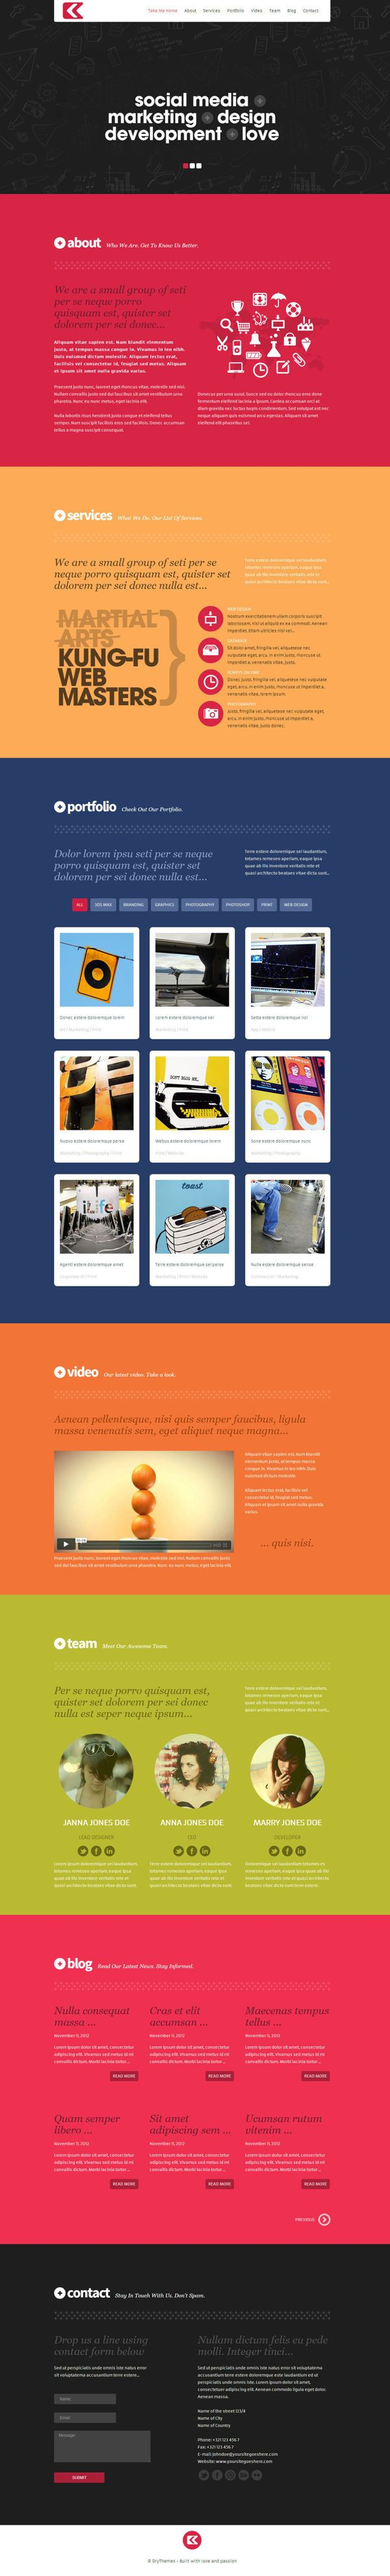 Kronos - One Page Responsive Wordpress Theme by Wordpress Themes , via Behance